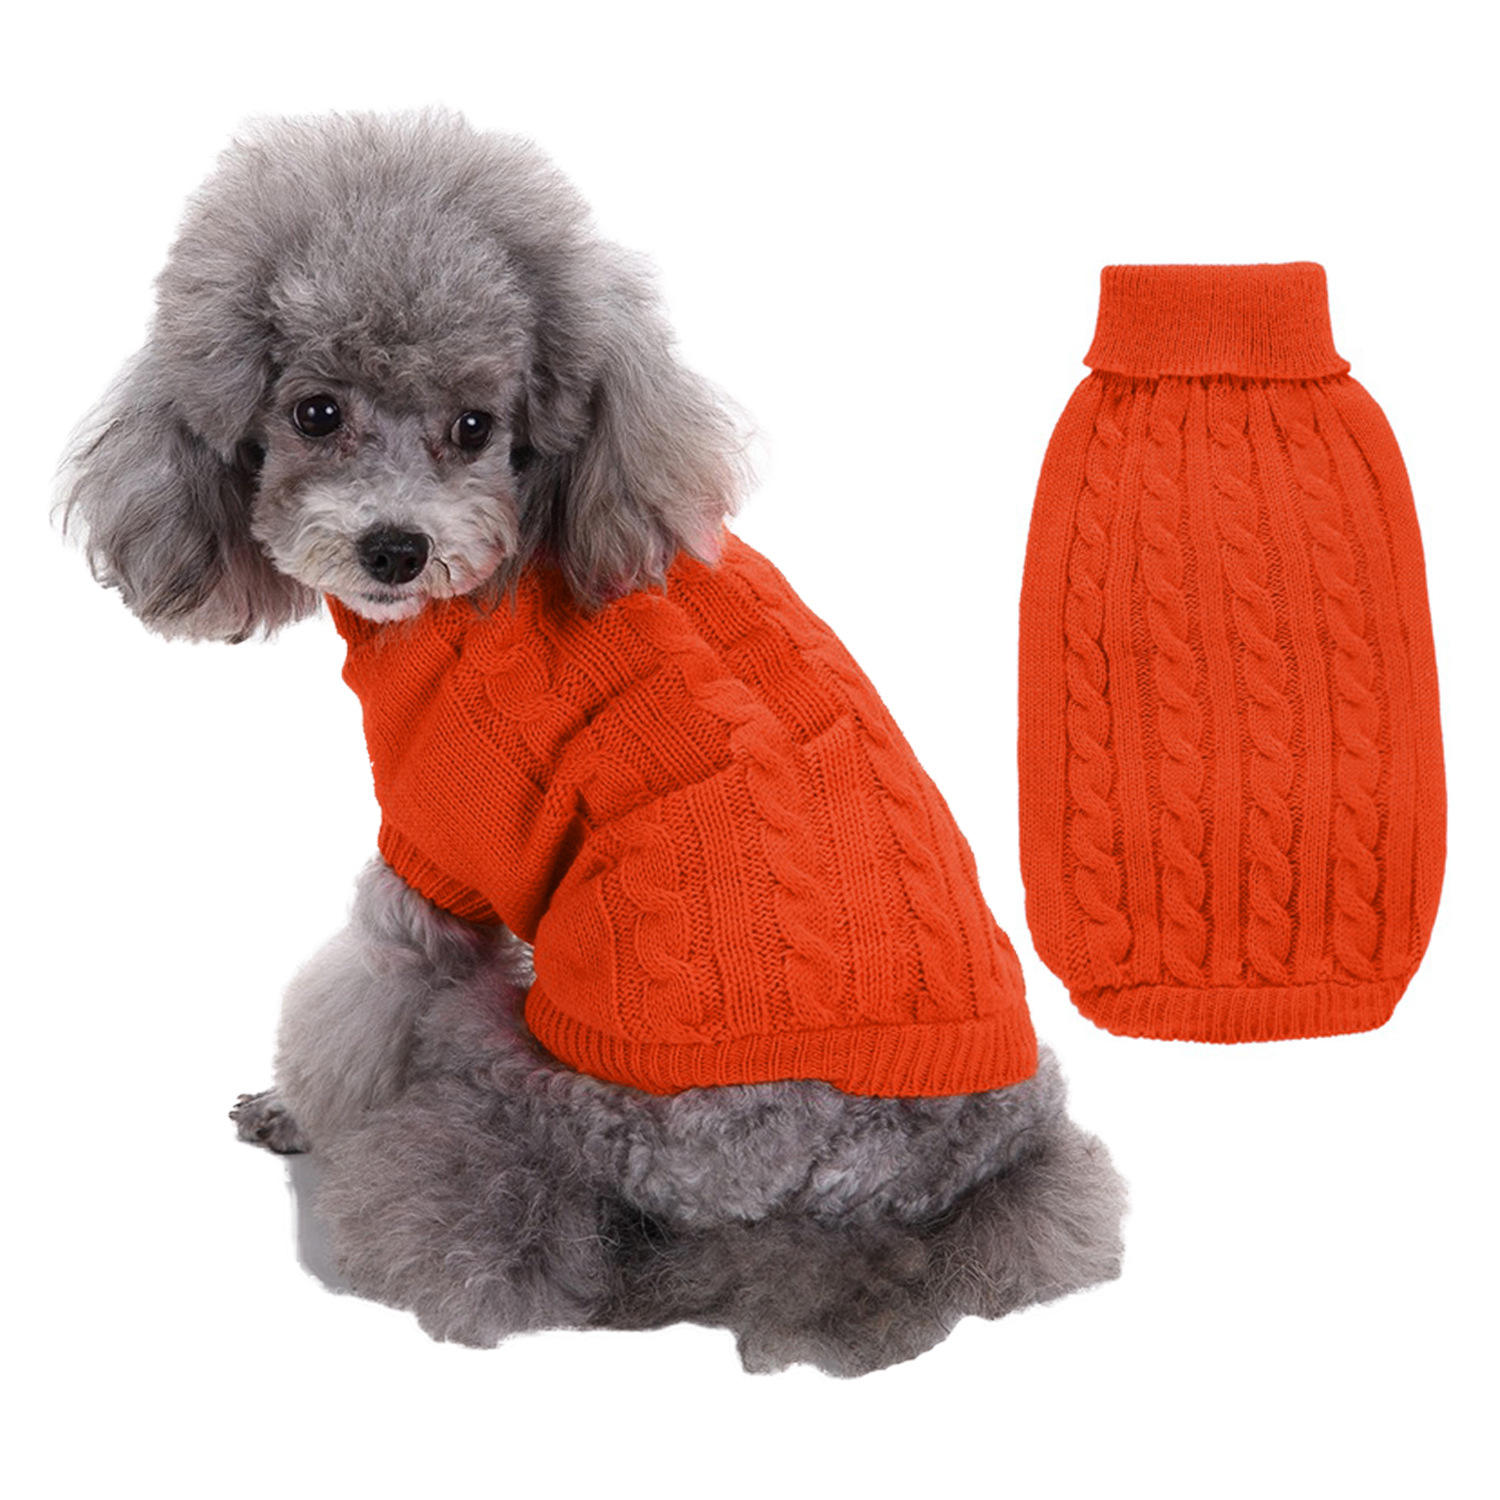 Amazon Top Seller Clothes Luxury Winter Pet Box For Shirts And Hoodie Dog Christmas Bulk Sport Men Nike